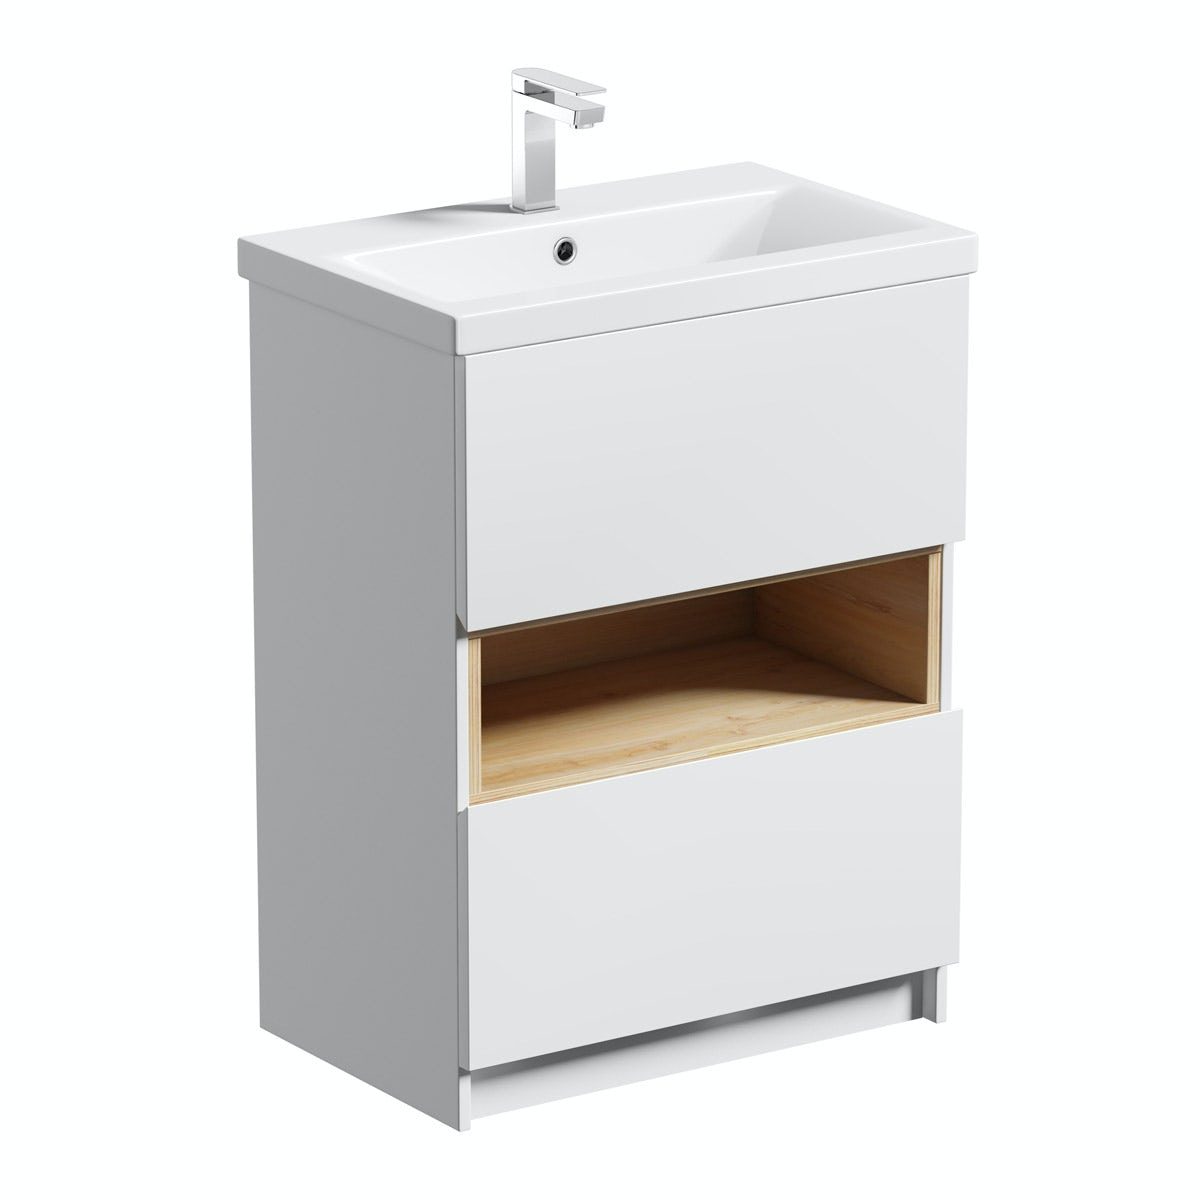 Tate Anthracite & Oak 600 vanity unit with basin